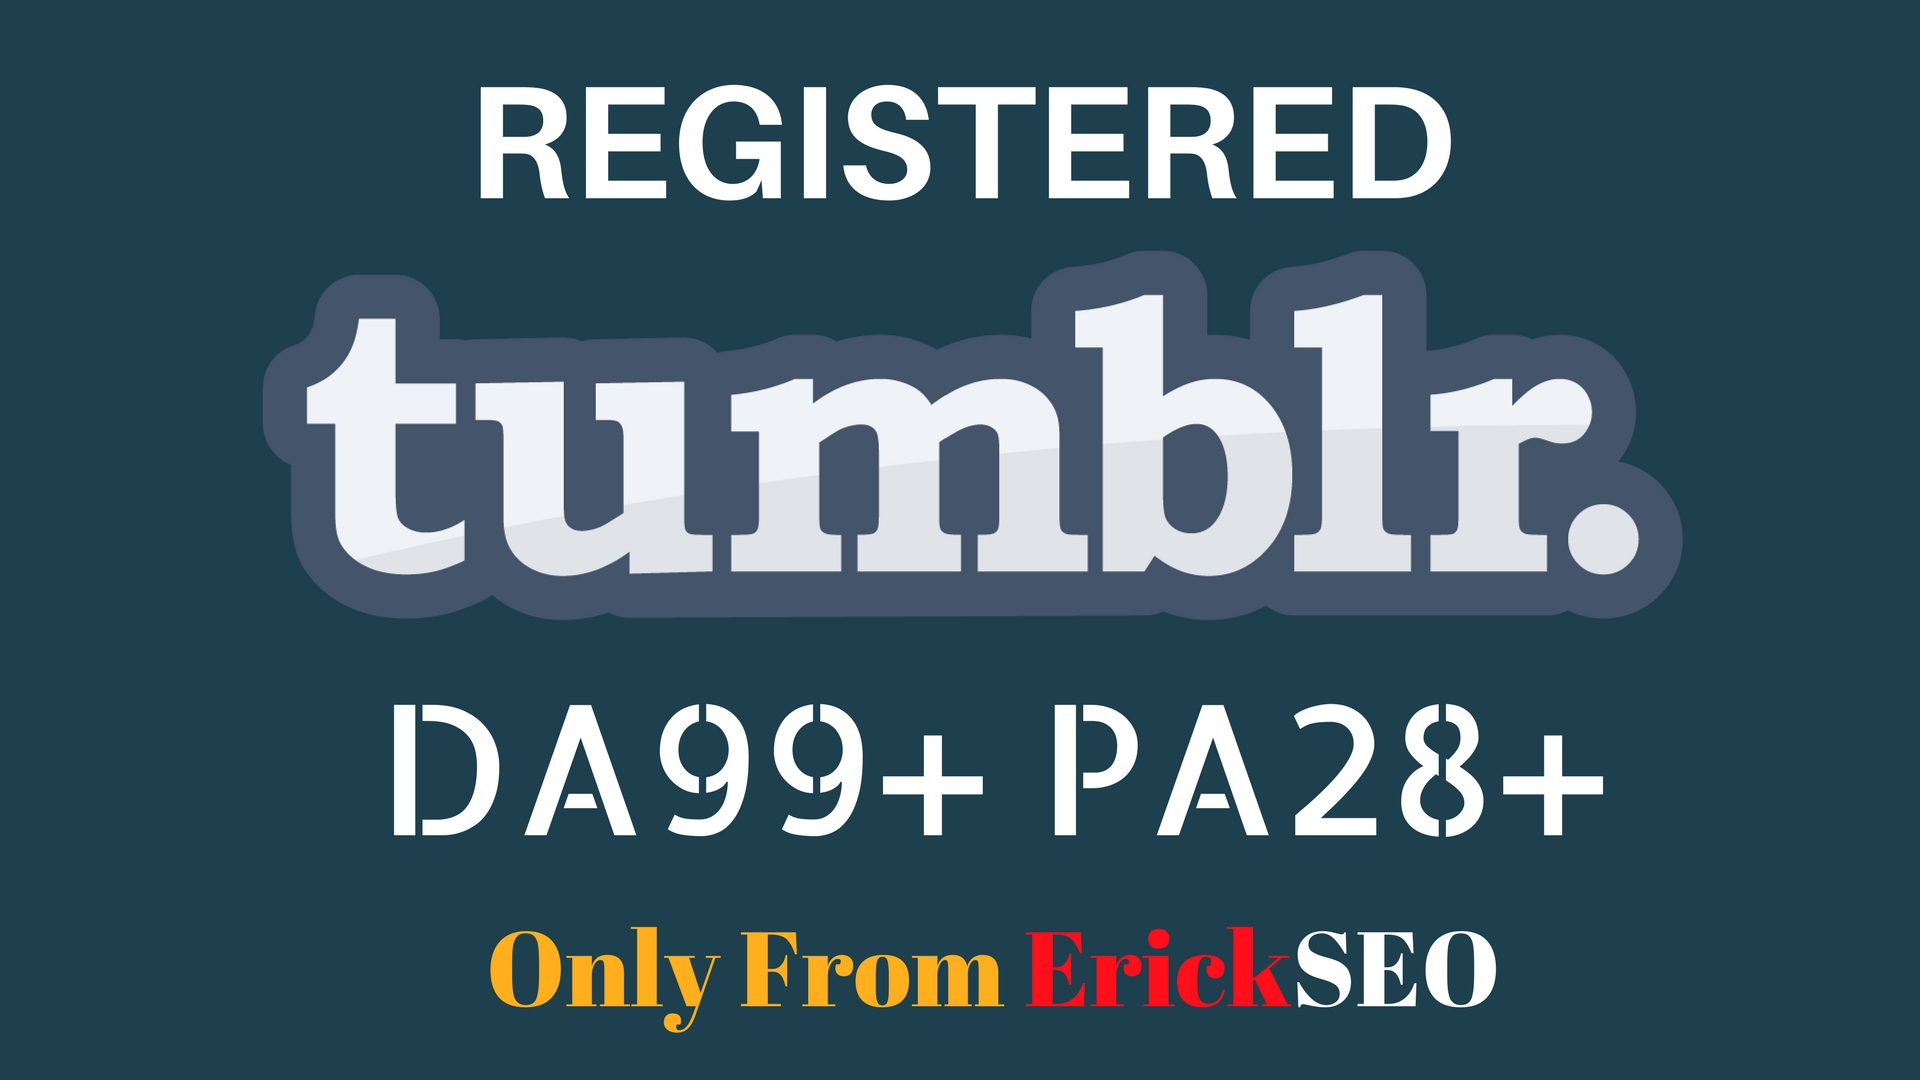 Register 5 Expired Tumblr Blogs PA 28+ Plus with login email and password